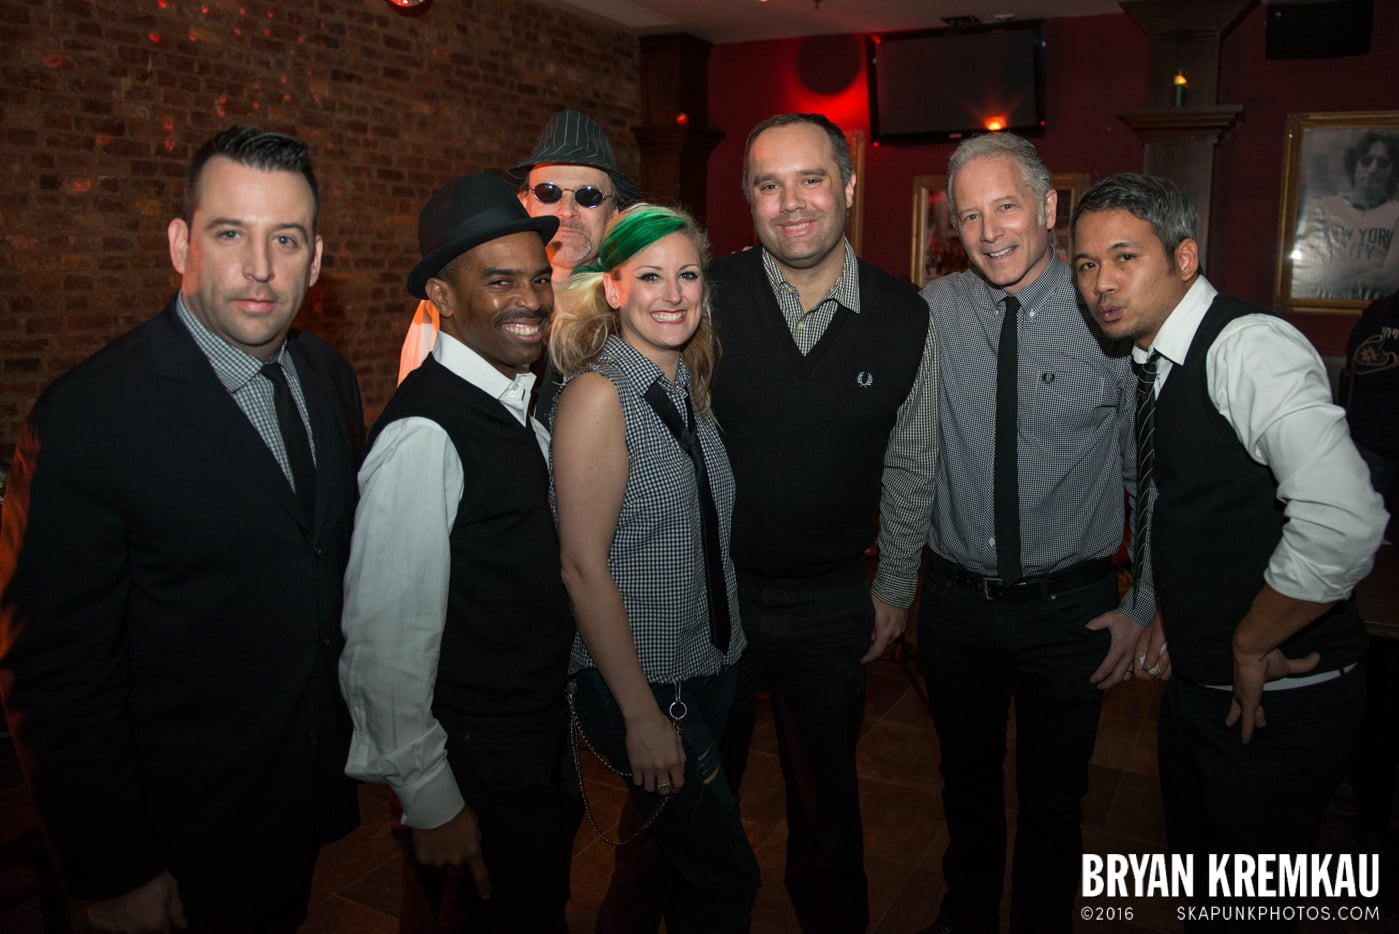 Rude Boy George @ Characters, NYC - 11.16.13 (40)